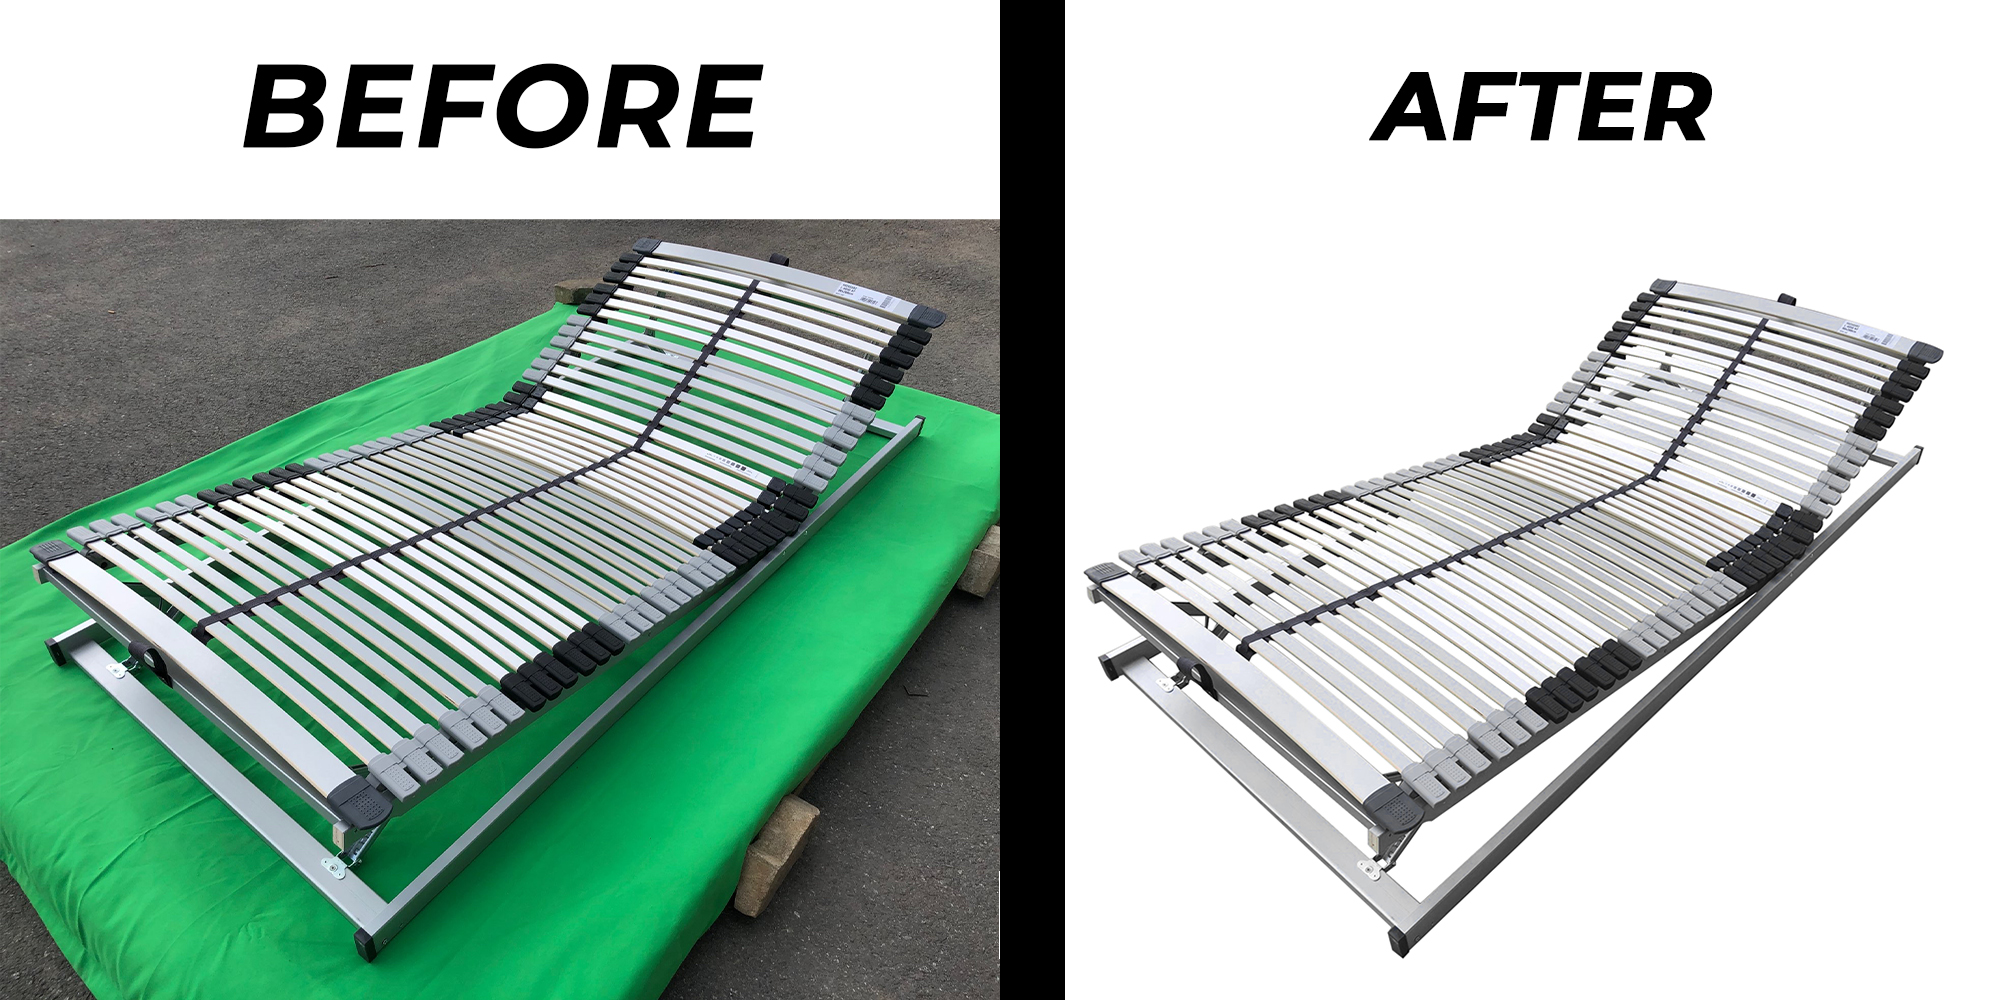 I will do any background removal and photoshop editing professionally within 1 hour